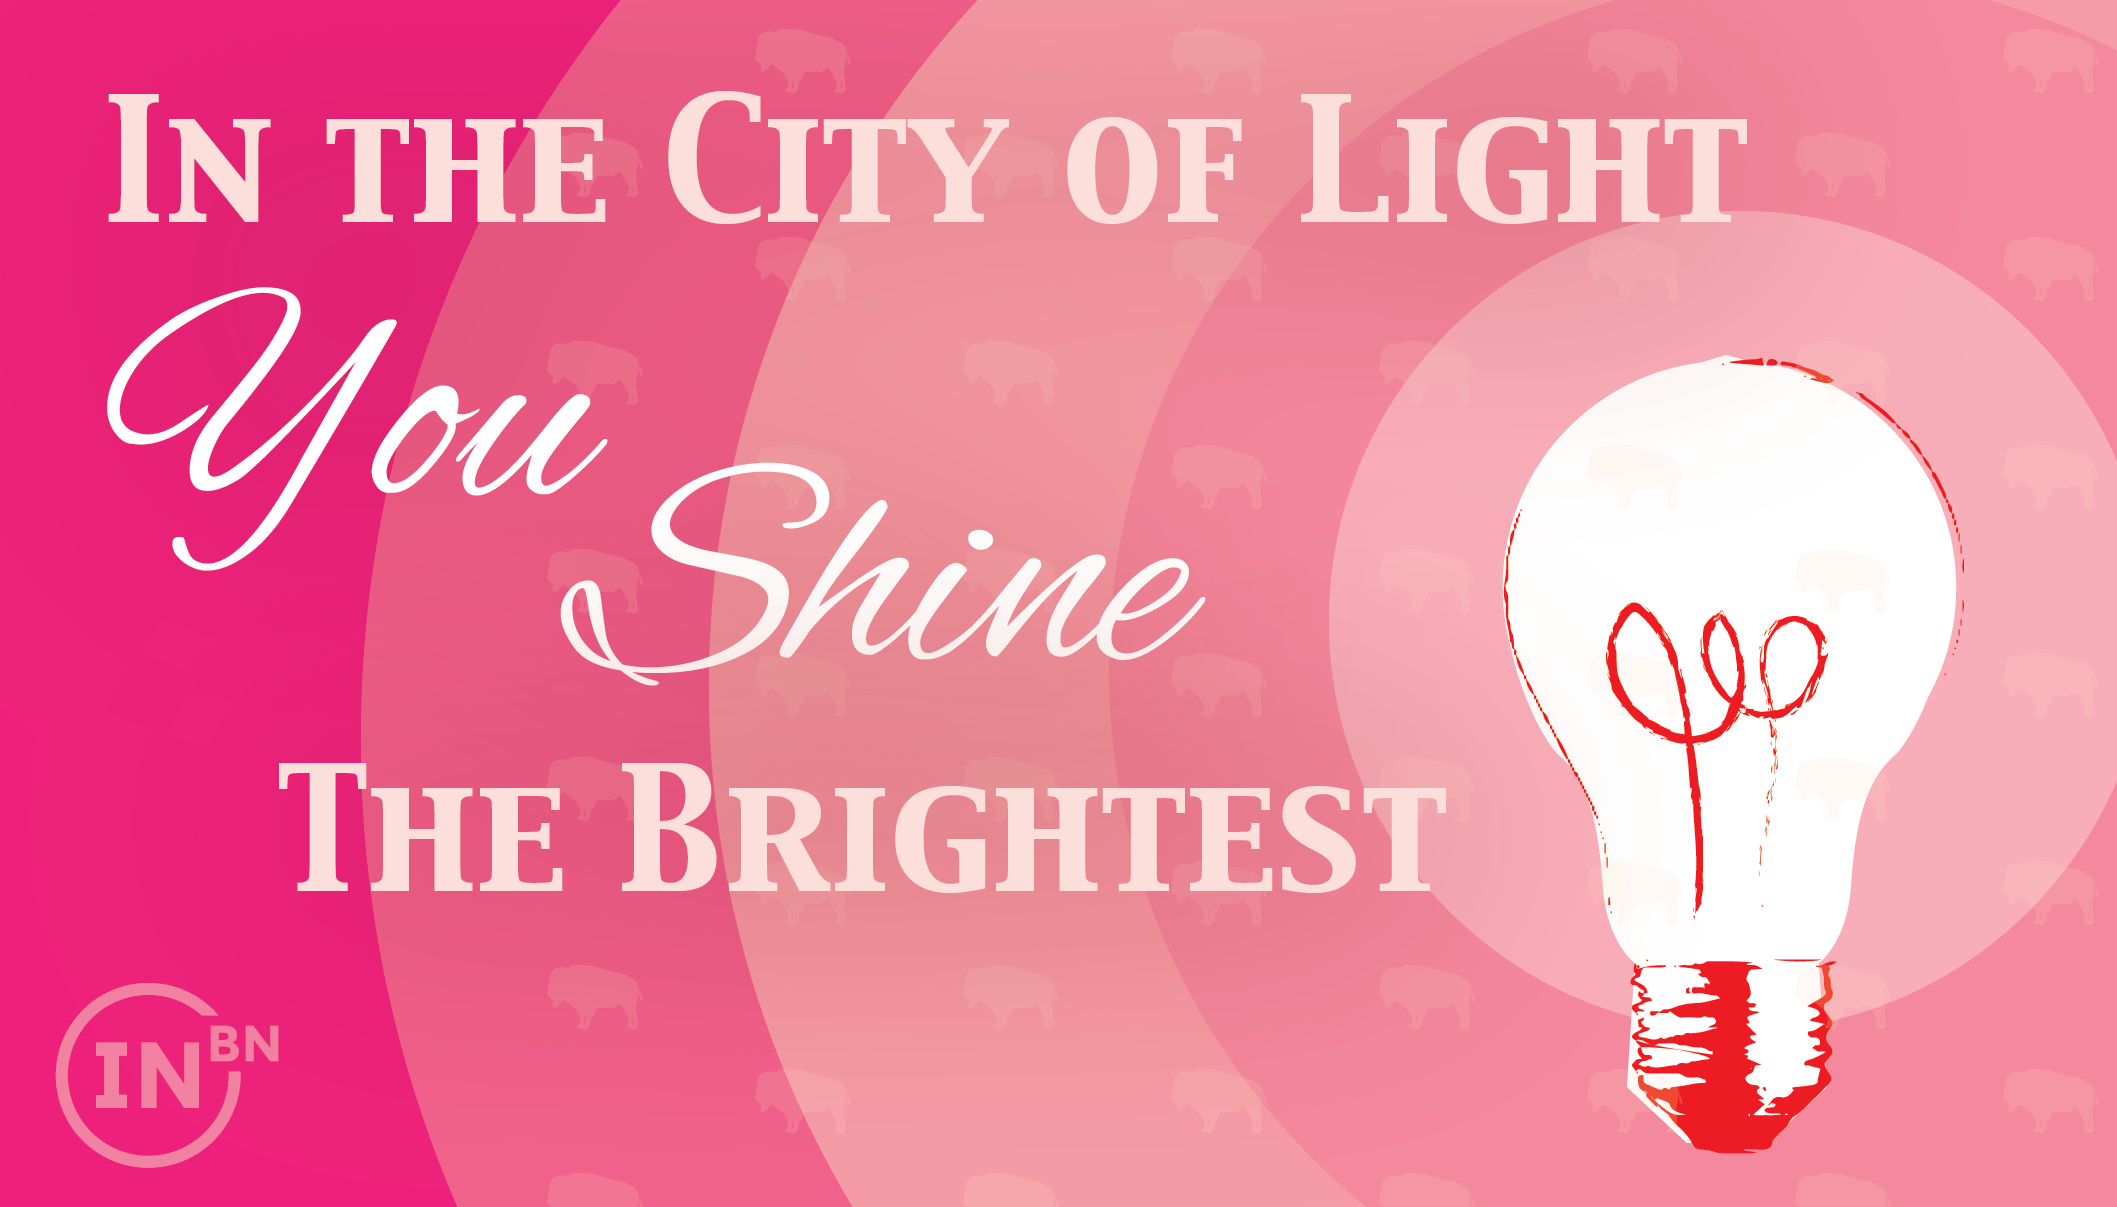 In the City of Light, you shine the brightest.